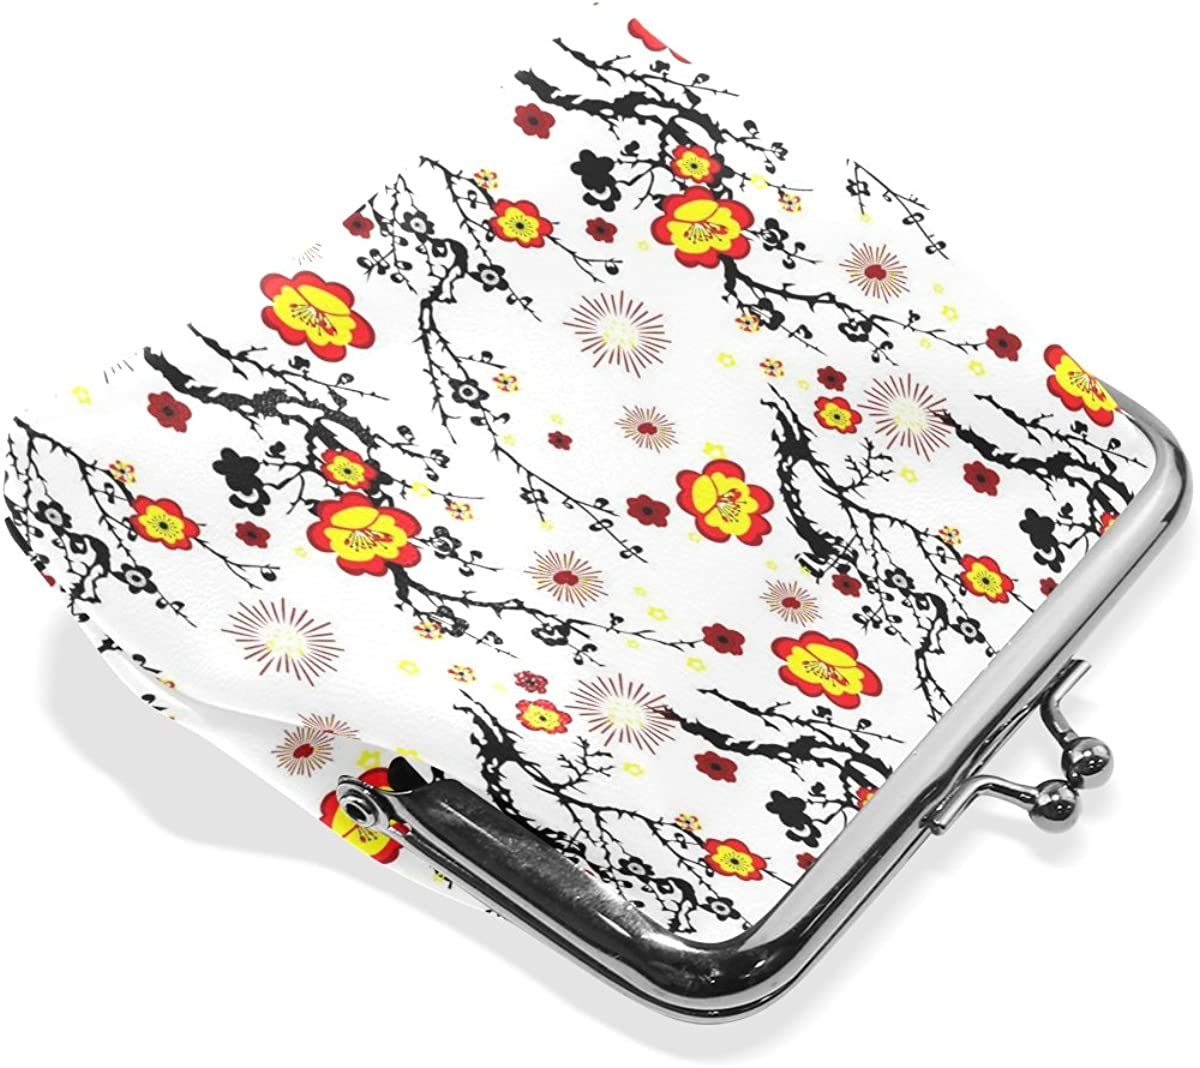 Sunlome Vintage Simple Floral Pattern Wallet Card Holder Coin Purse Clutch Handbag for Women Girls